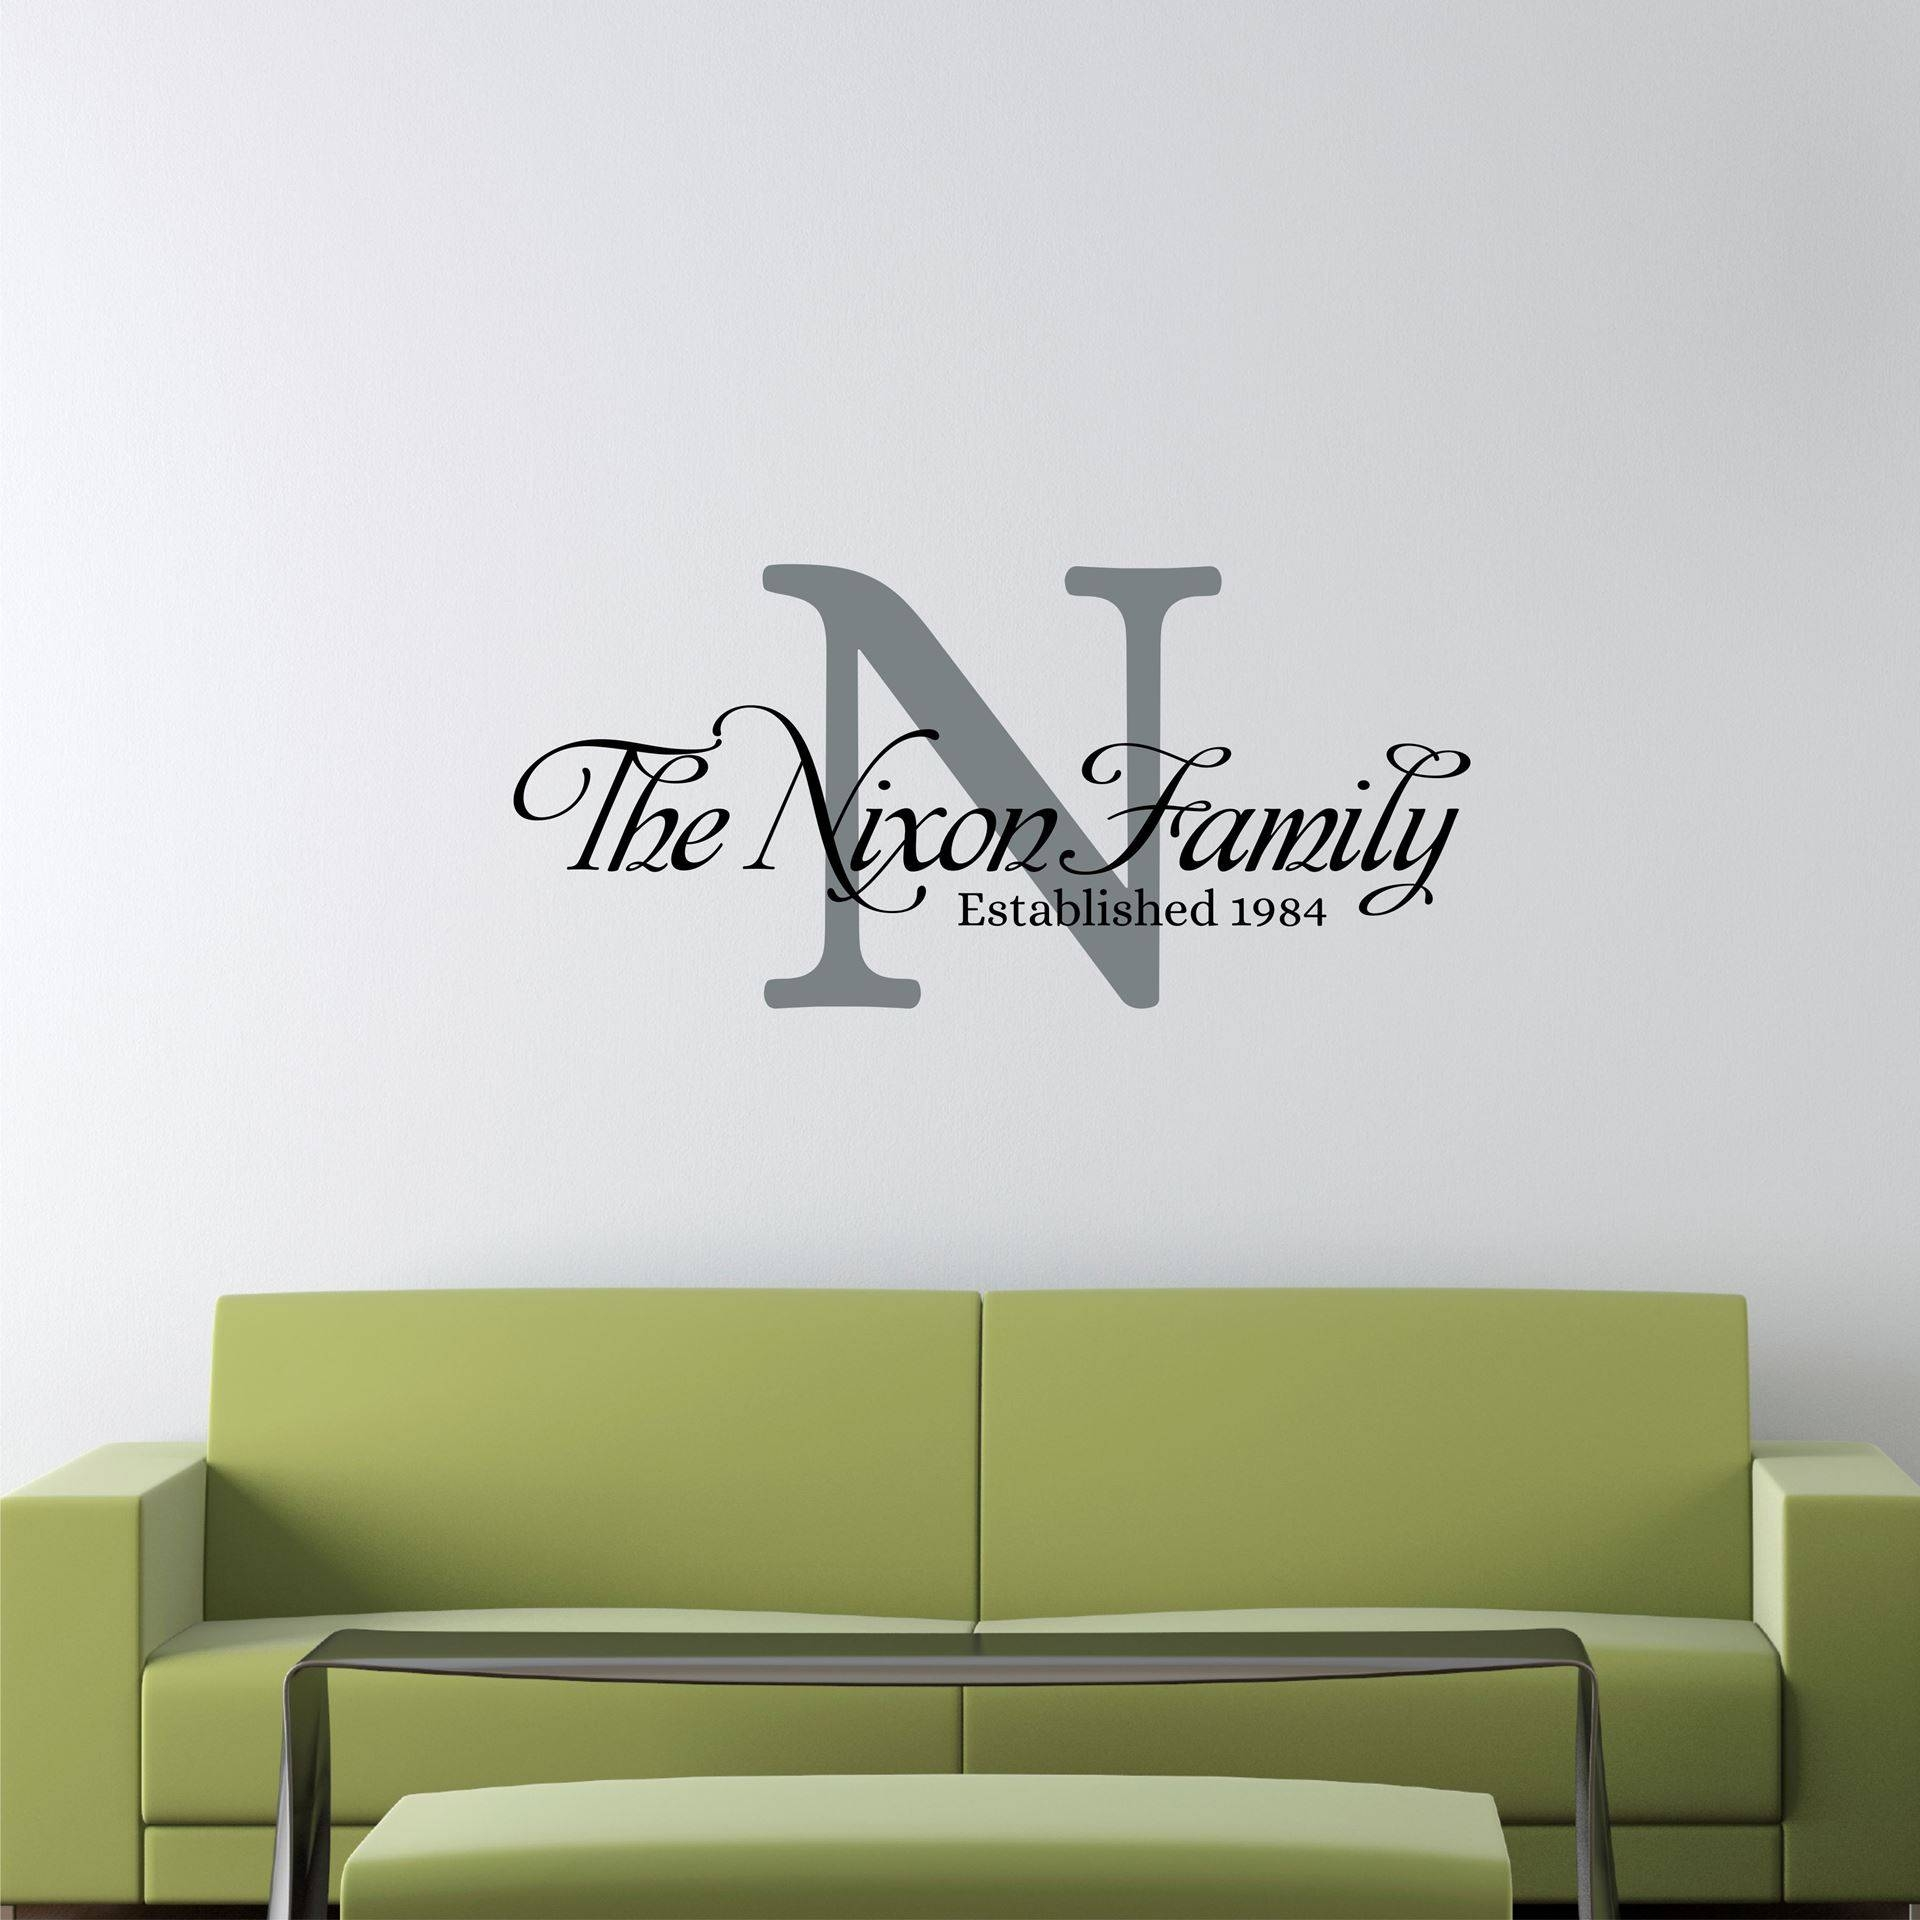 Amusing 25+ Personalized Last Name Wall Art Design Decoration Of Within Most Recently Released Personalized Last Name Wall Art (View 11 of 20)